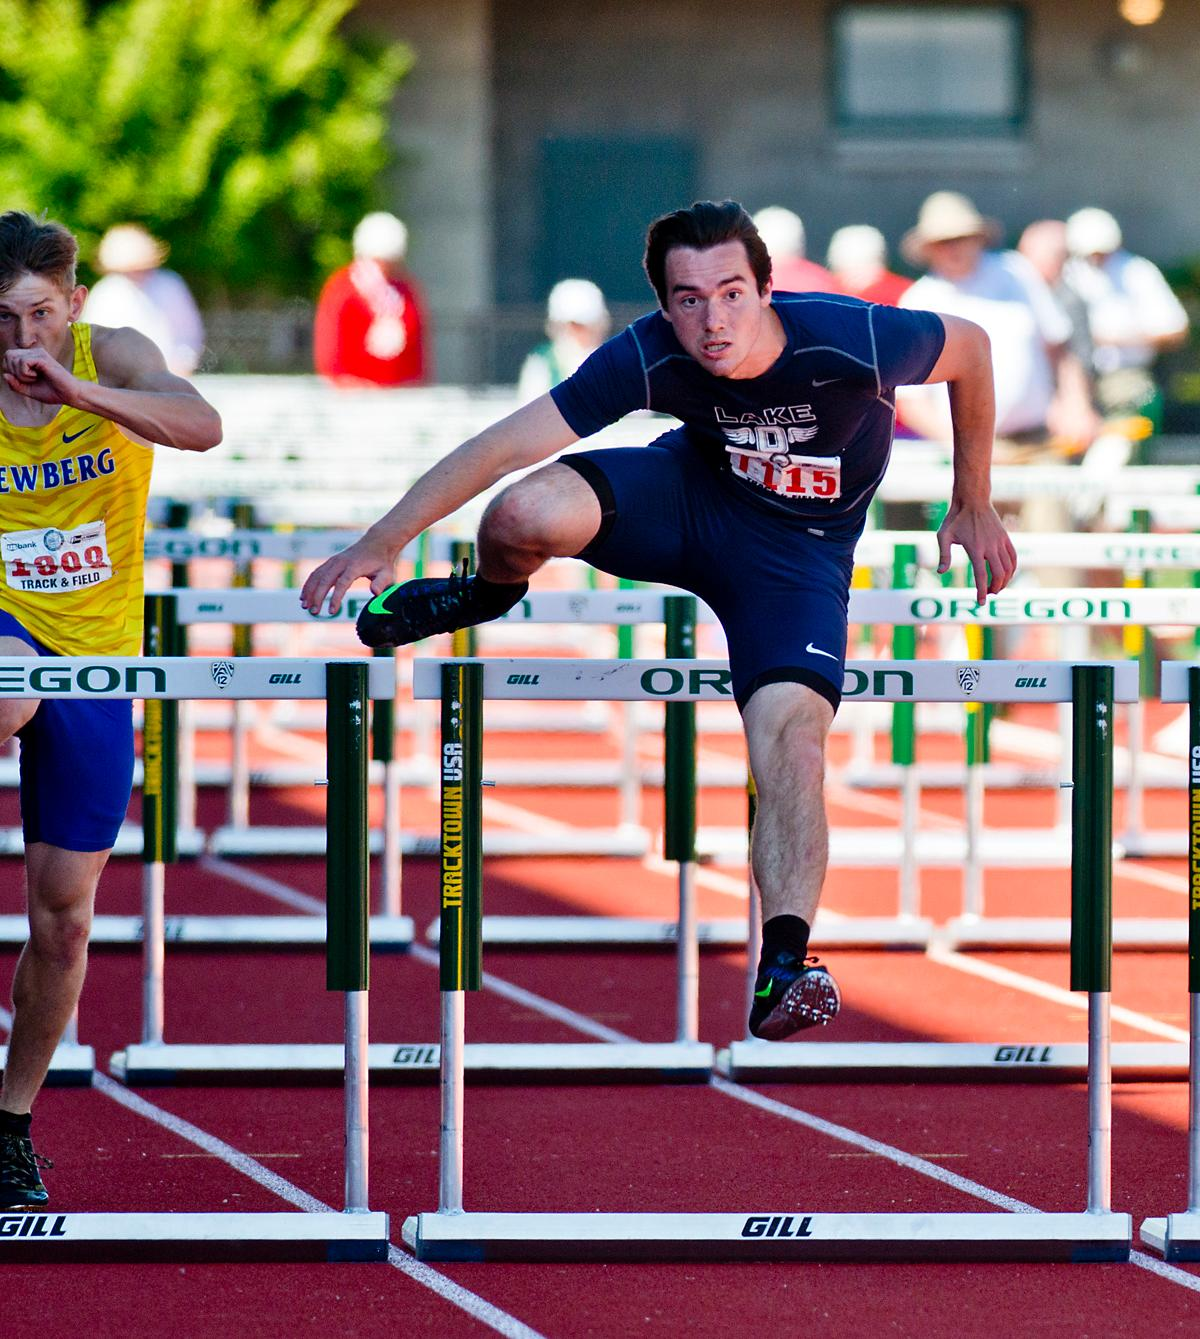 Carter Bracken fromn Lake Oswego wins the 6A Boys 110 meter Hurdles with a time of 14.24 at the OSAA Championship at Hayward Field this Saturday. Photo by Dan Morrison, Oregon News Lab